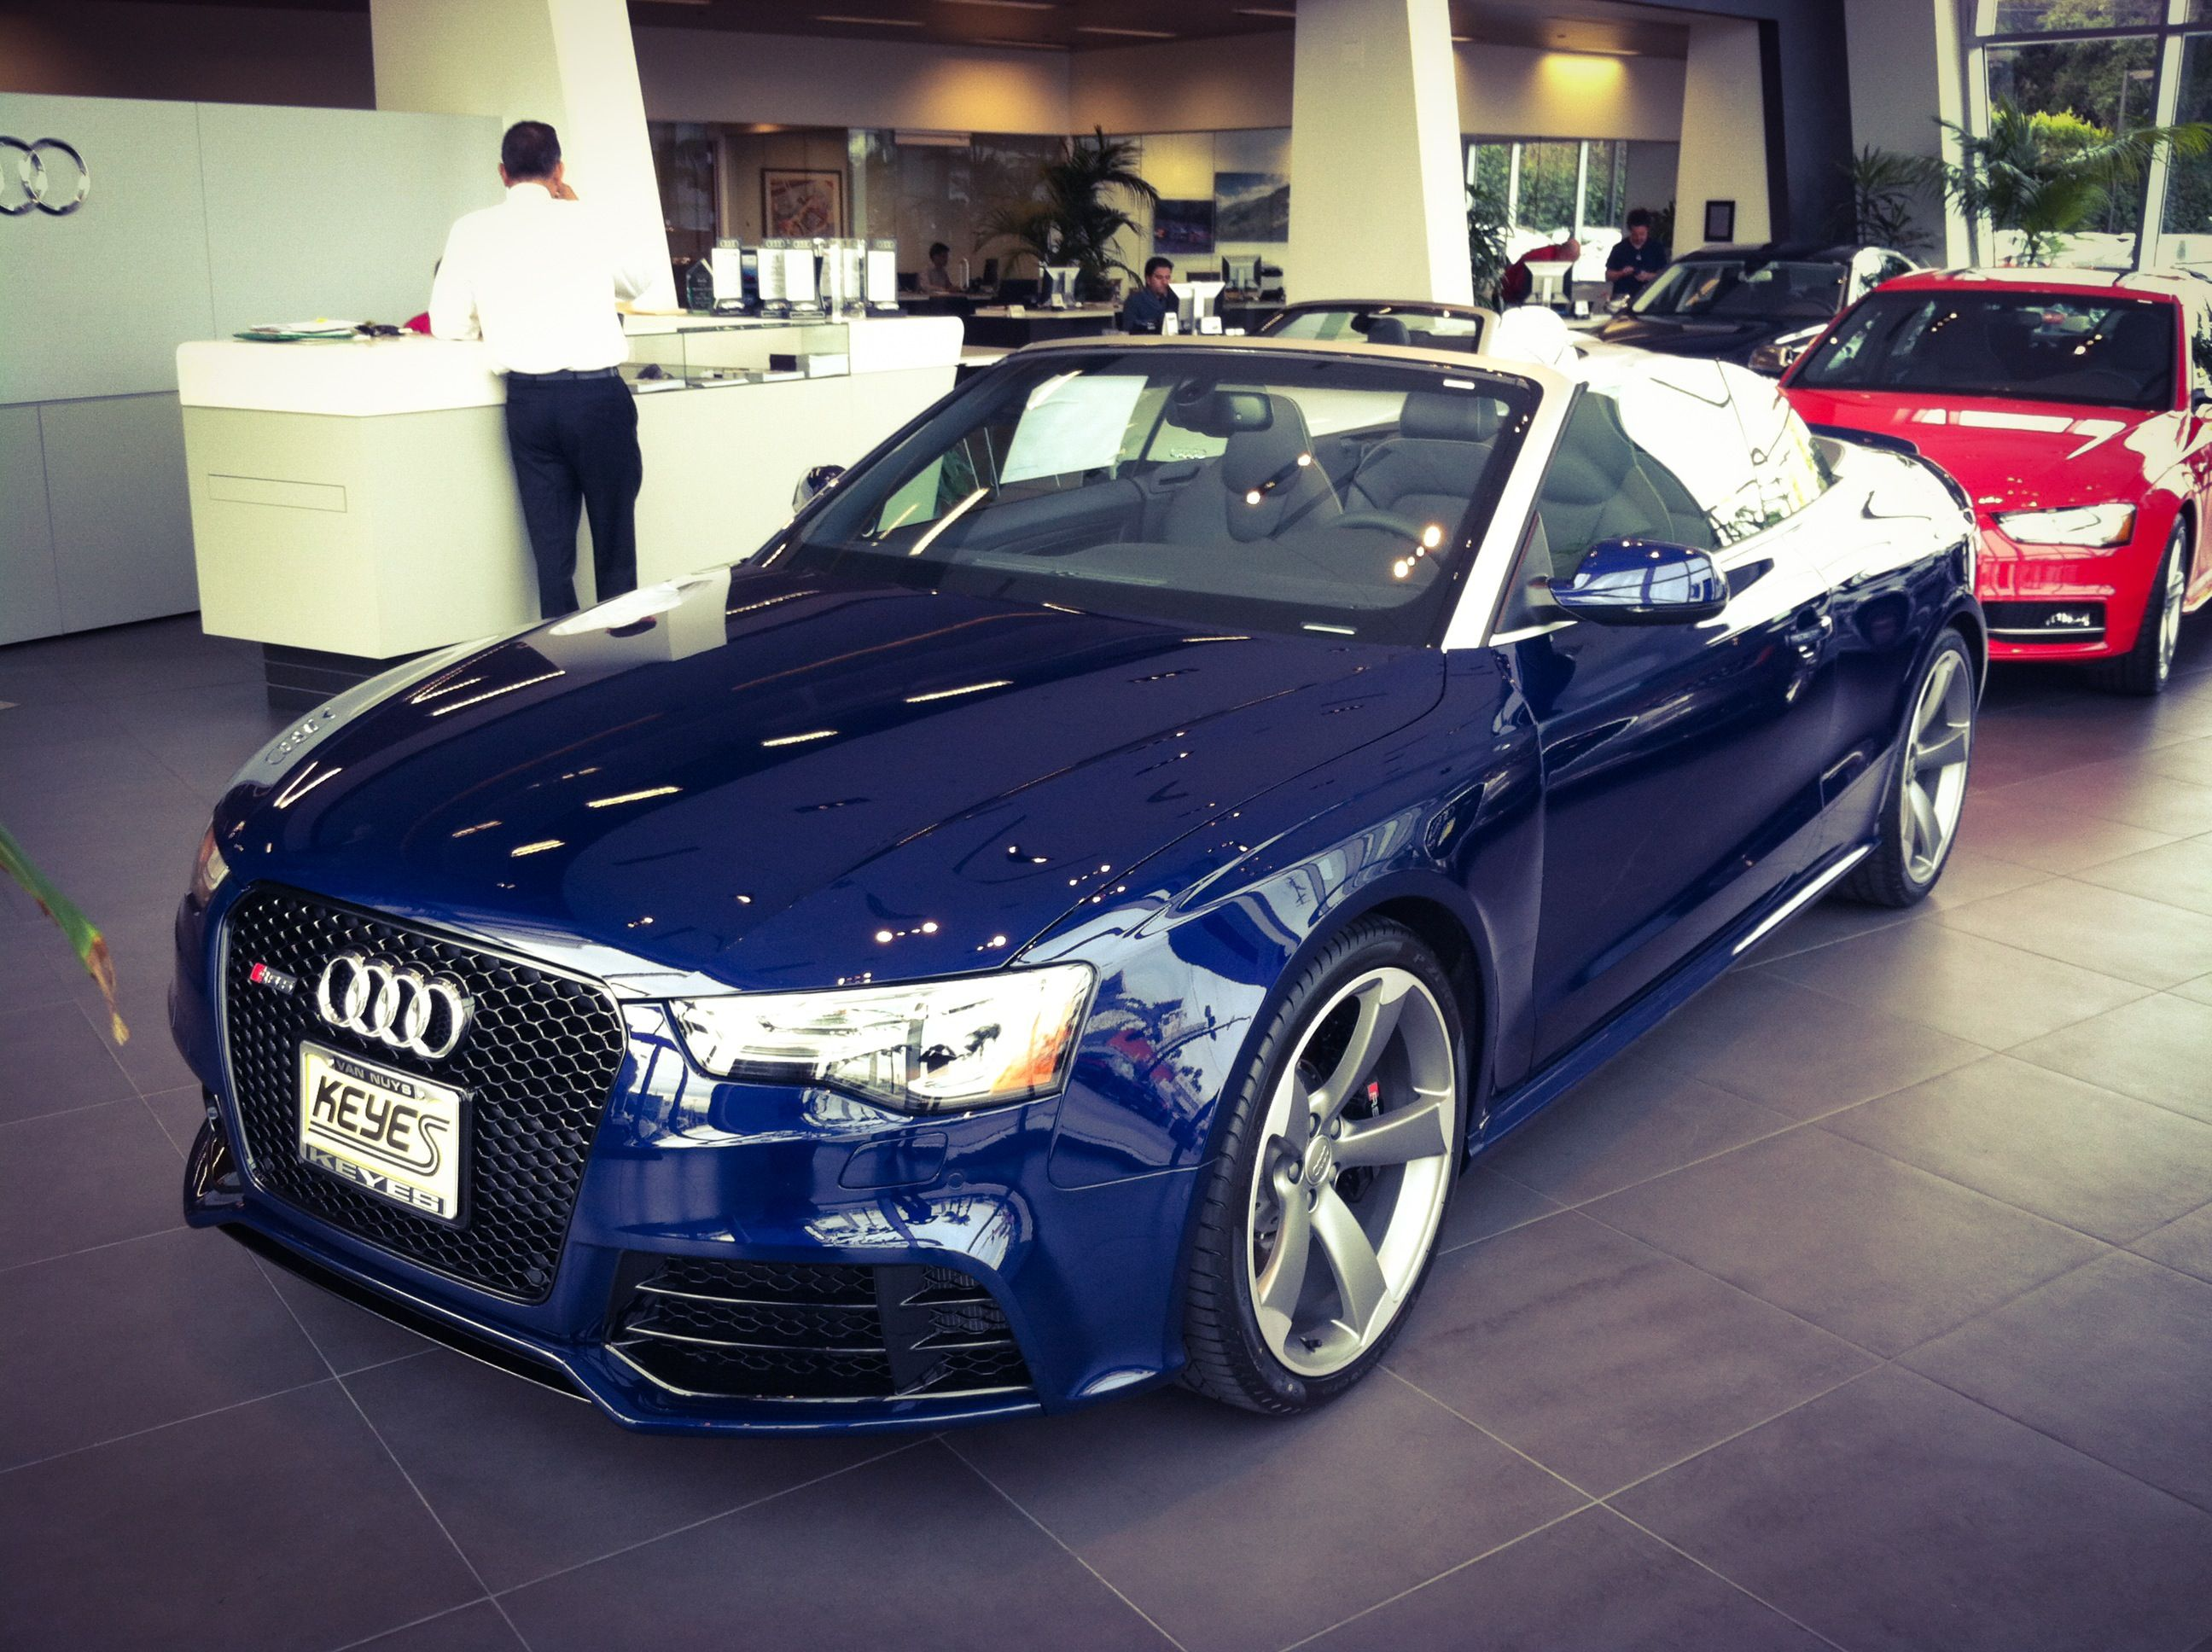 2014 audi rs5 cabriolet has arrived at keyes audi this very rare audi is panther black crystal effect on titanium with sport exhaust who s intere